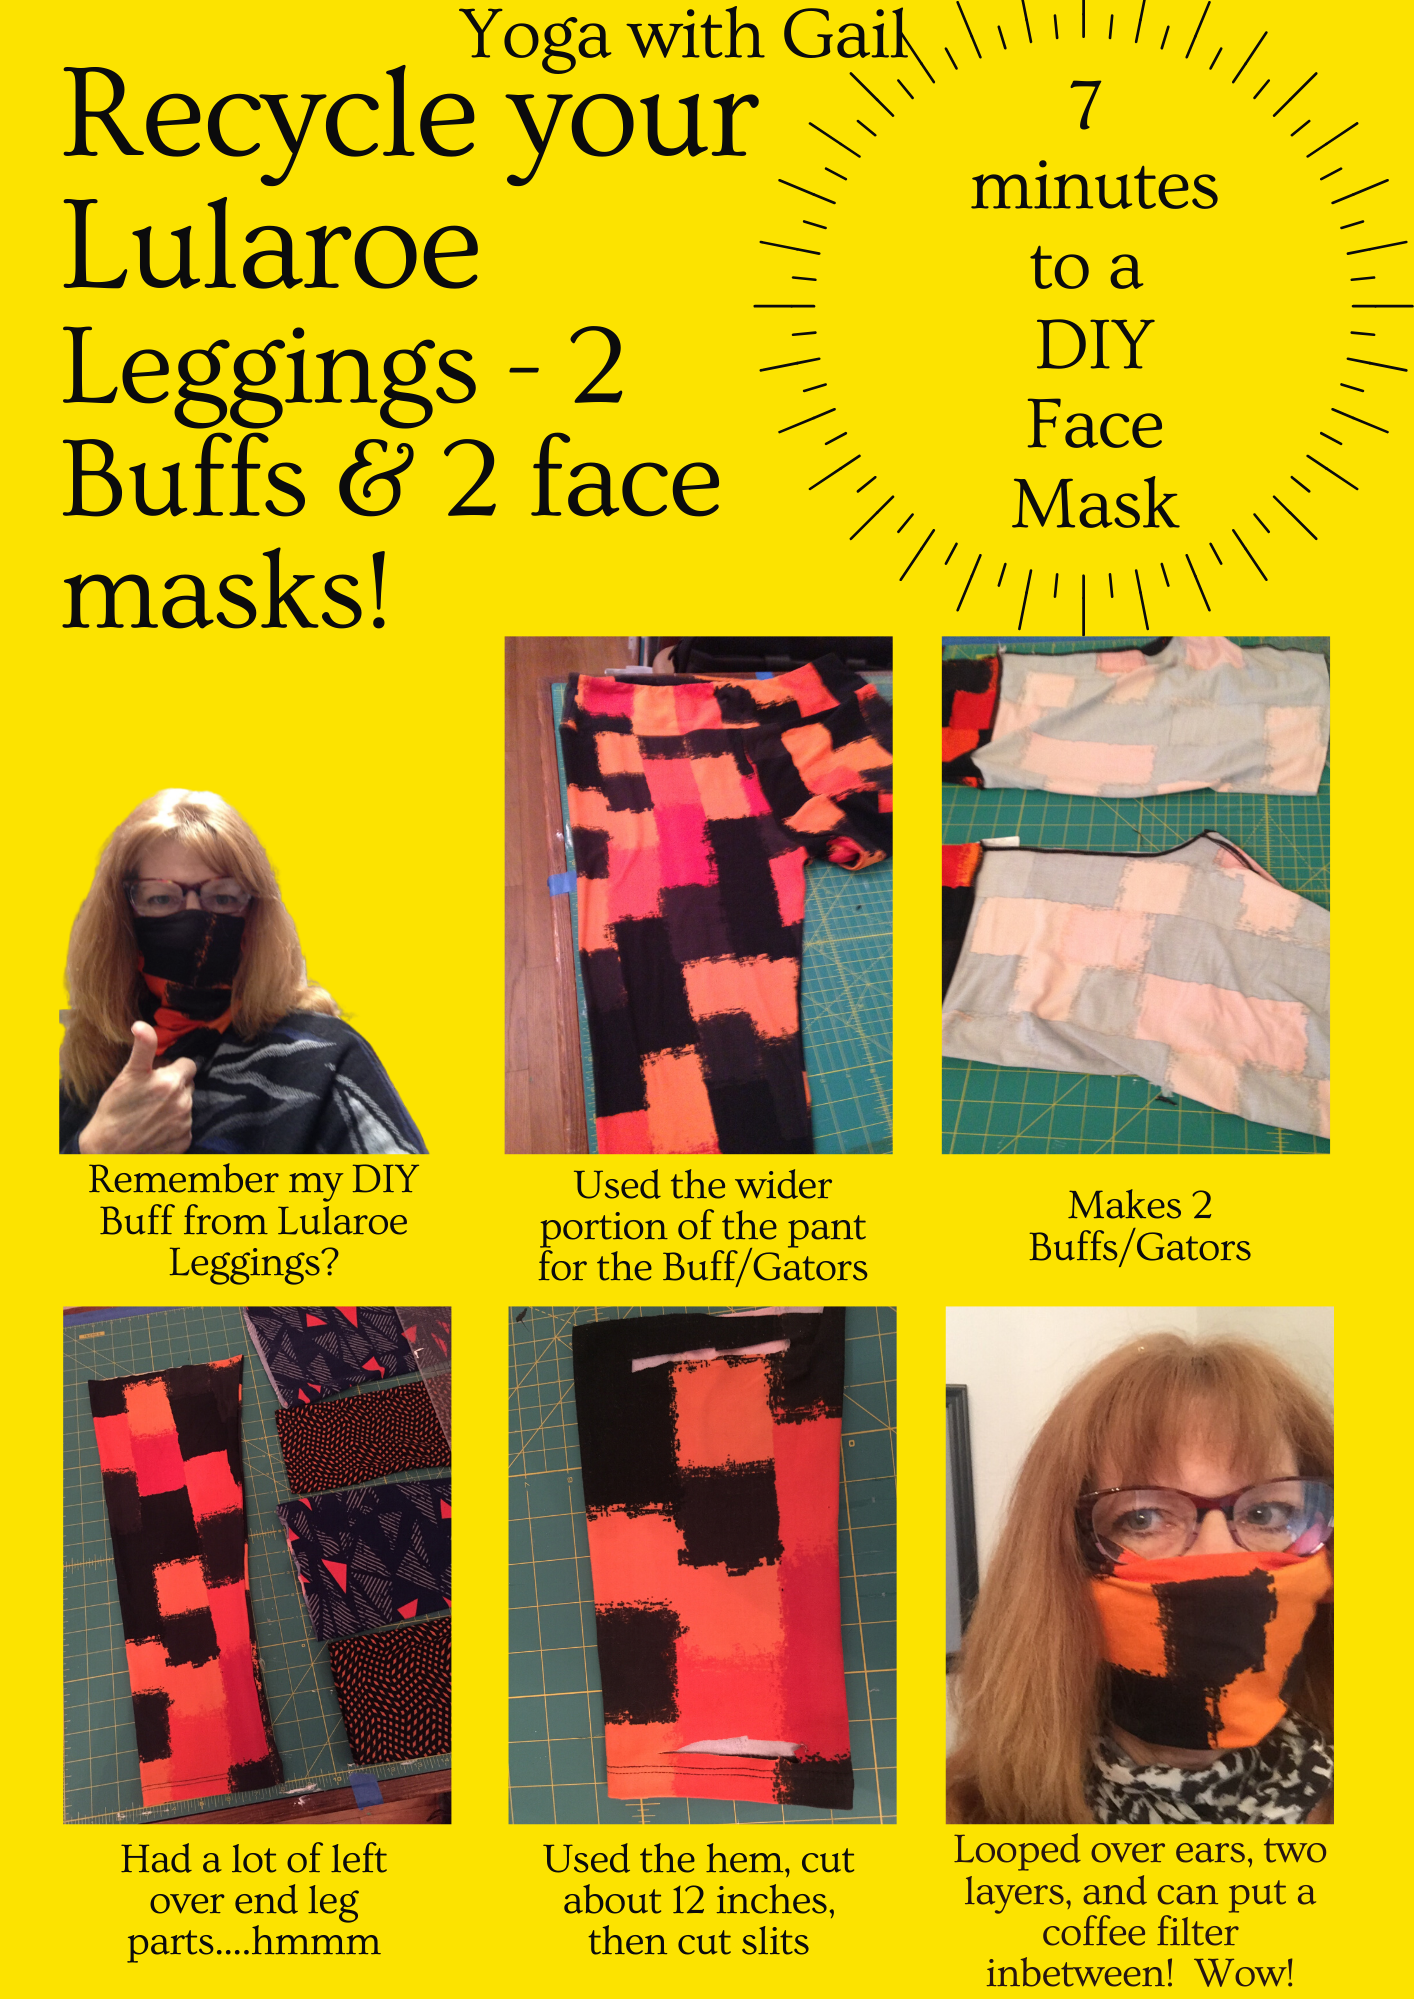 Recycle your LuLaRoe Leggings and make two Buffs/Gators and two Face Mask Coverings.